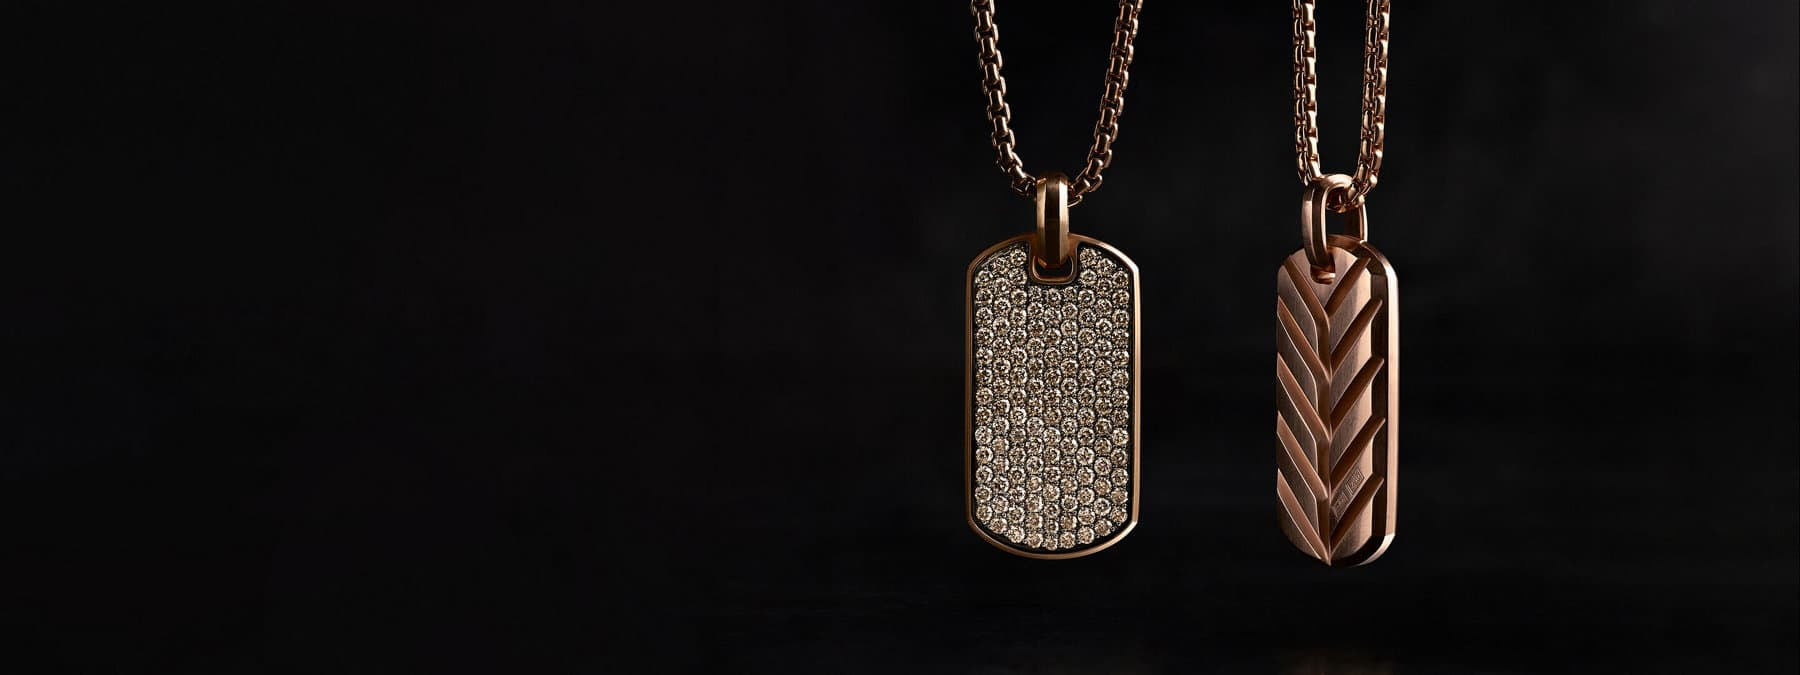 A color photograph shows two David Yurman men's tags strung on box-chain necklaces. The jewelry is crafted from 18K rose gold with pavé diamonds. One tag shows Chevron detailing while the other tag is covered with diamonds